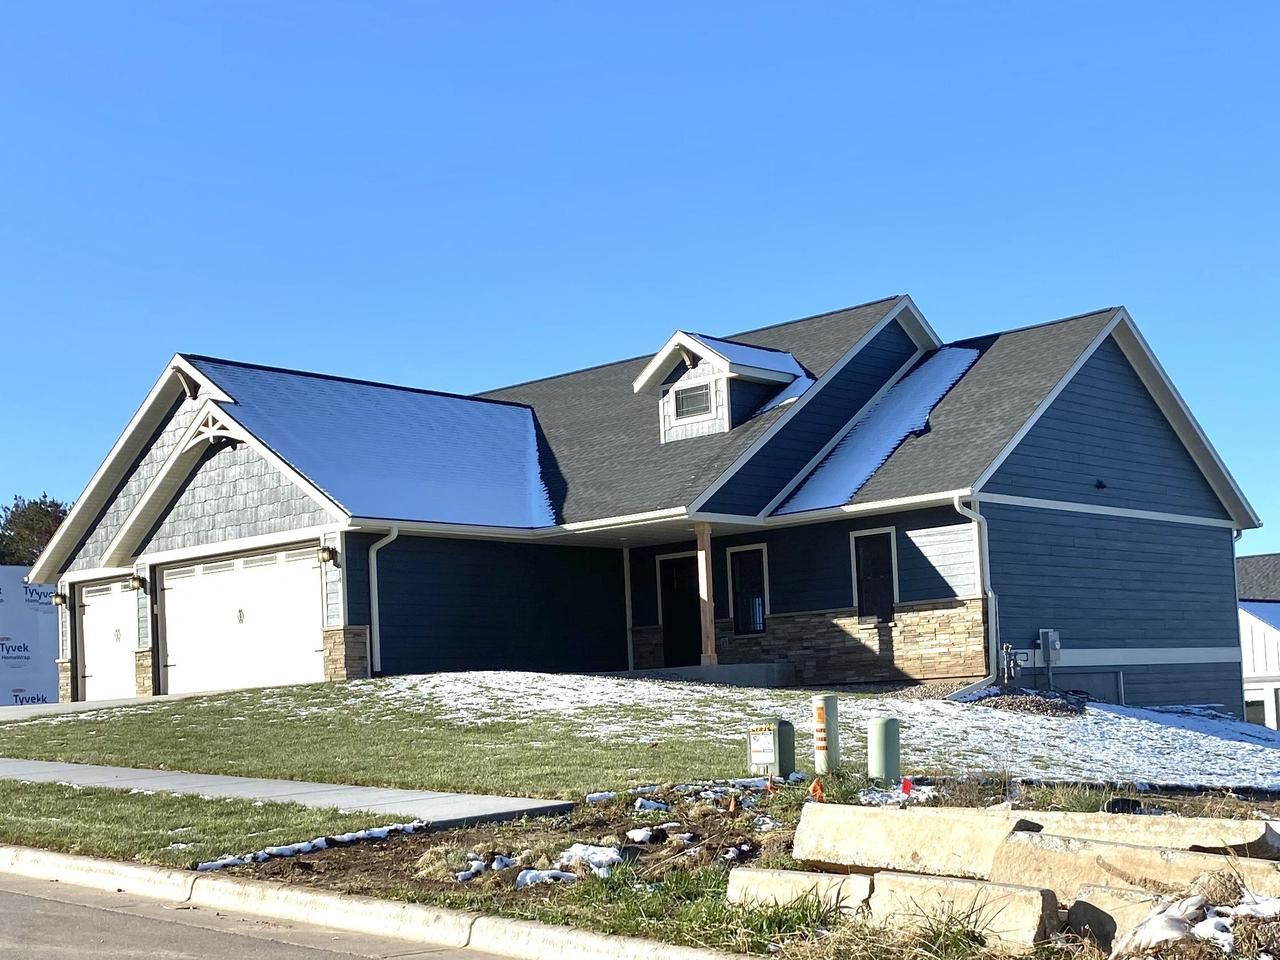 614 Forest View Dr, Holmen, WI 54636 - MLS#: 1676302